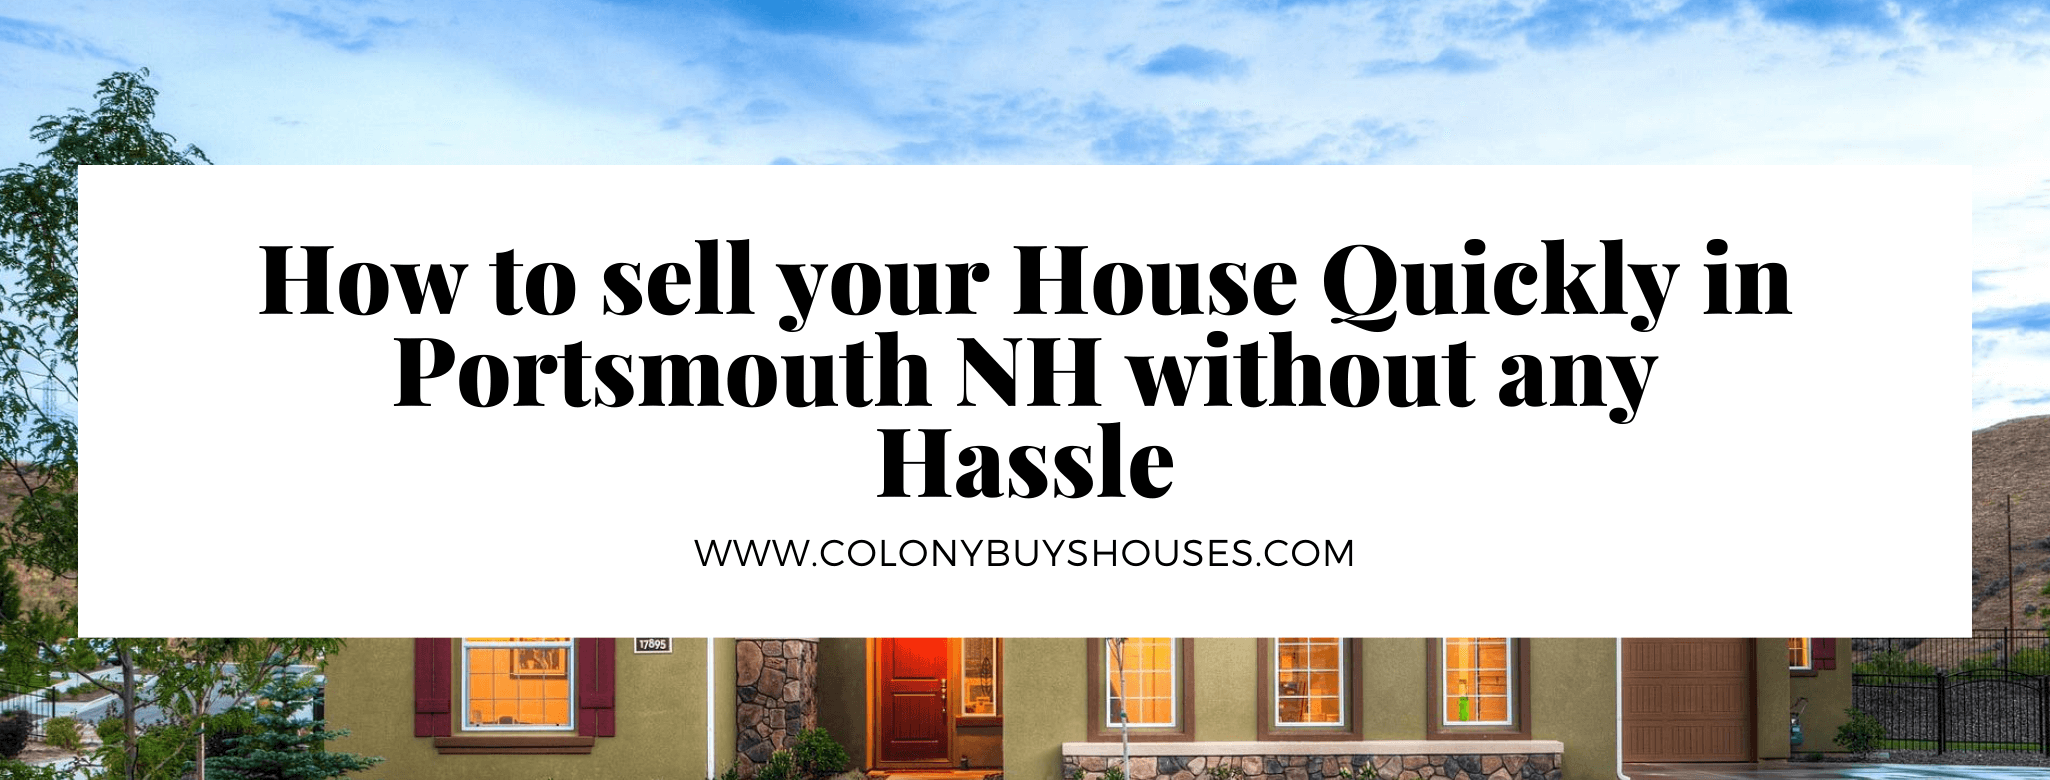 Portsmouth NH house buyers